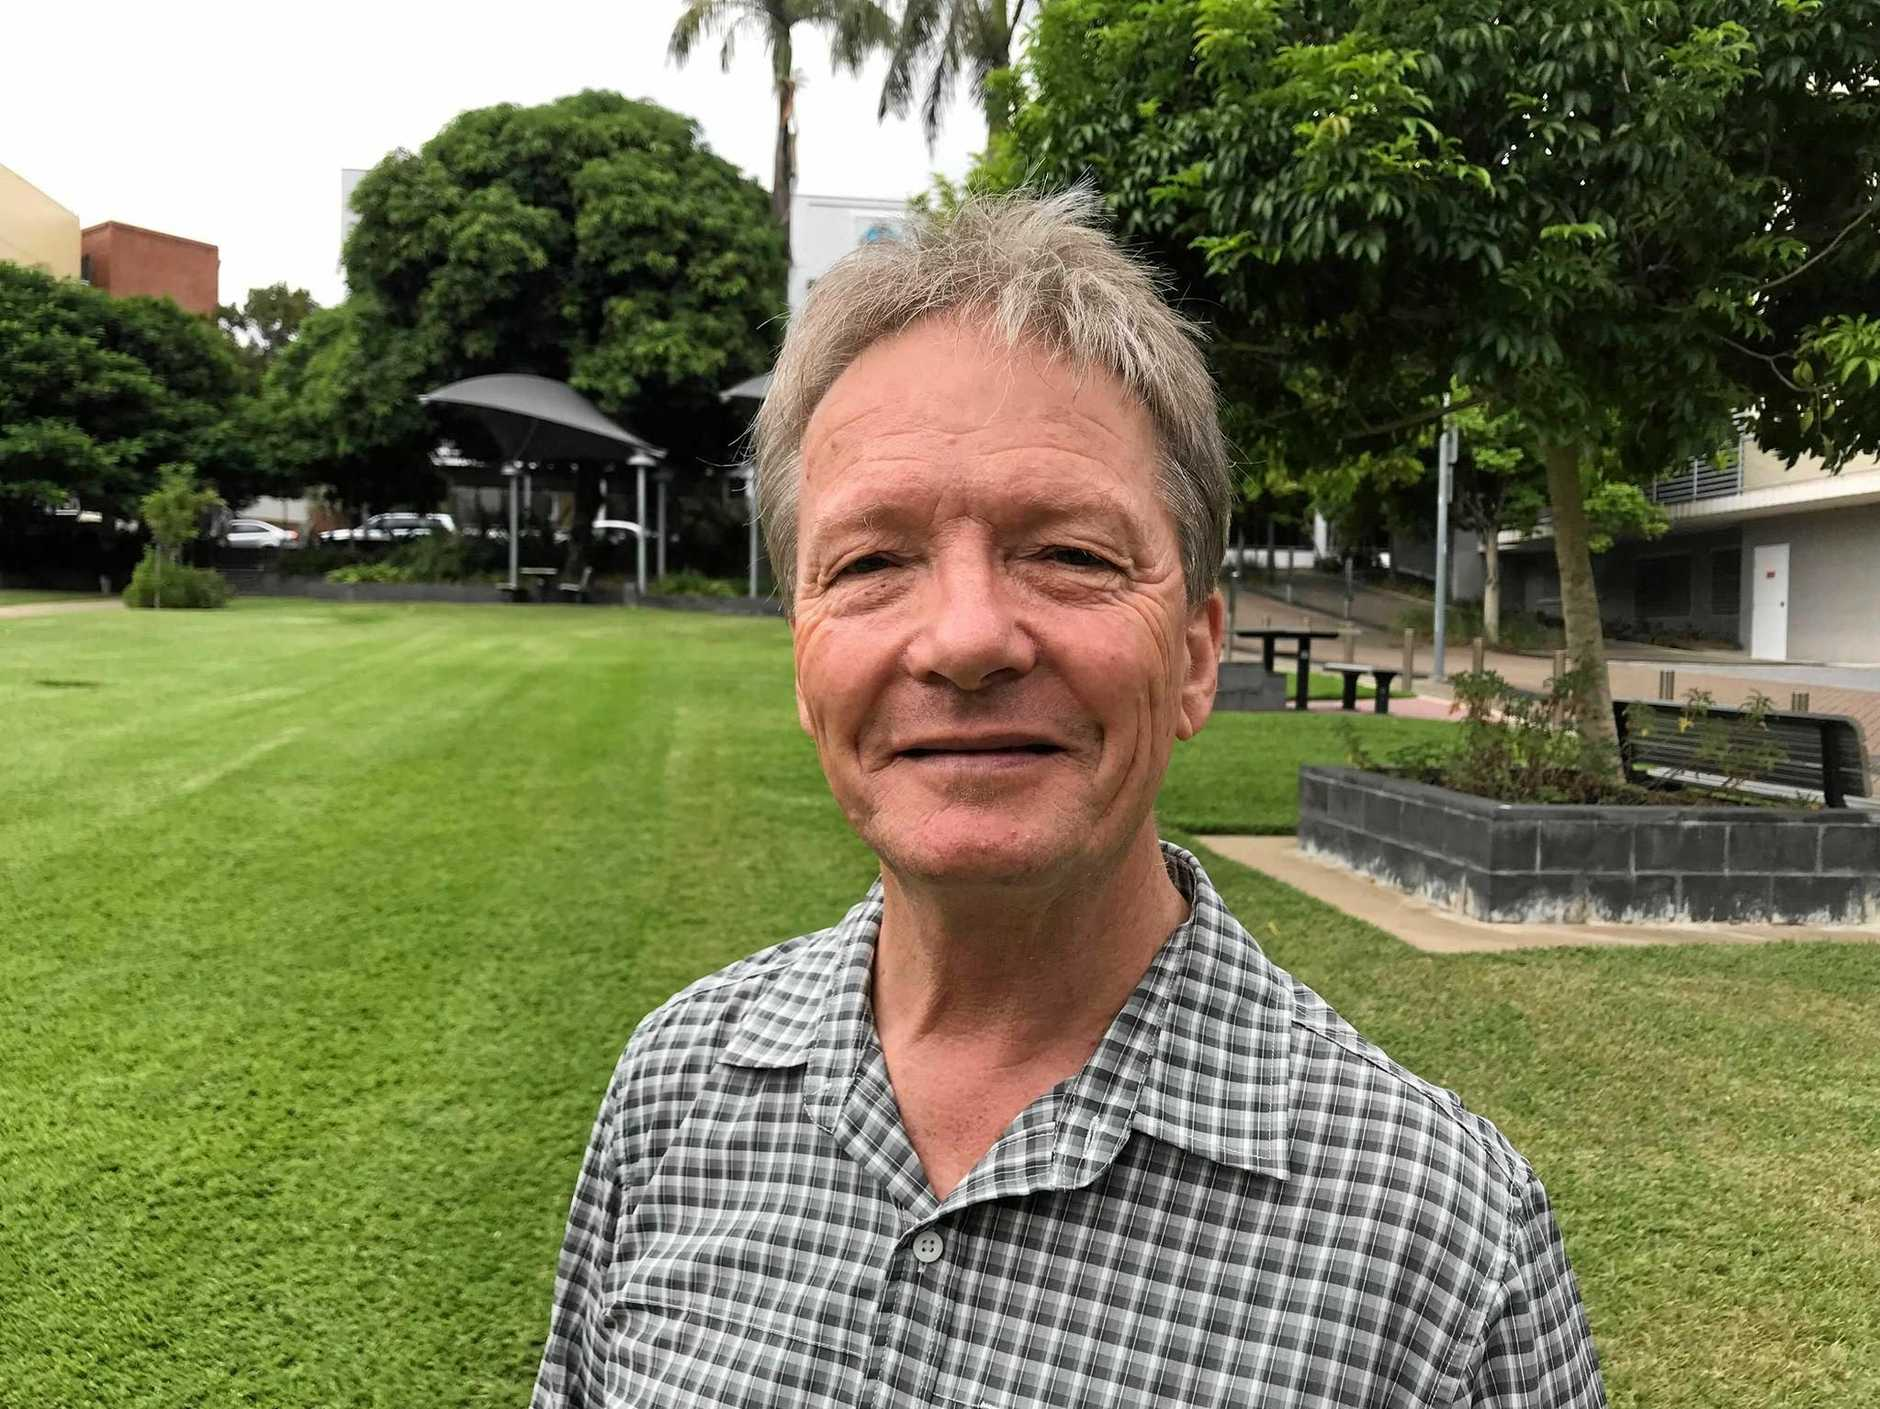 Brassall resident Bill Redman said he would have happily absorbed the cost of recycling in his rates, if it meant not sending recycling to landfill.